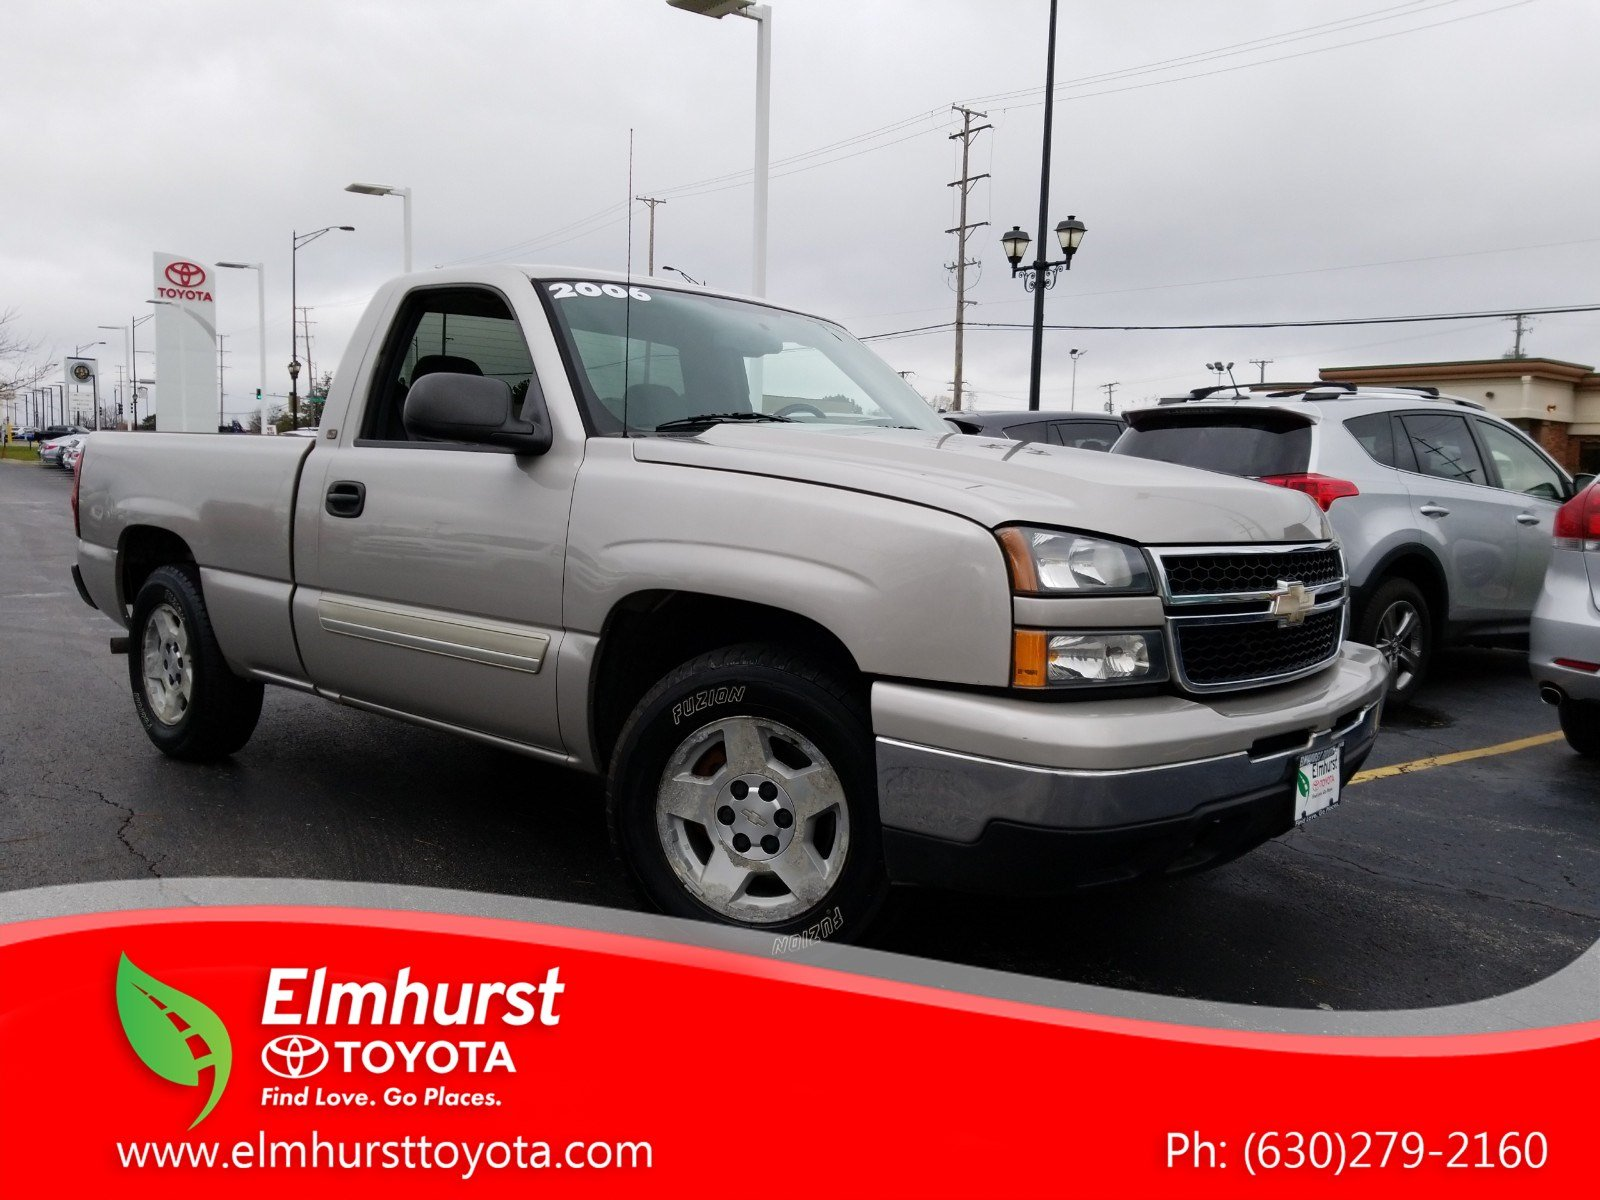 Pre Owned 2006 Chevrolet Silverado 1500 LT 2D Standard Cab in